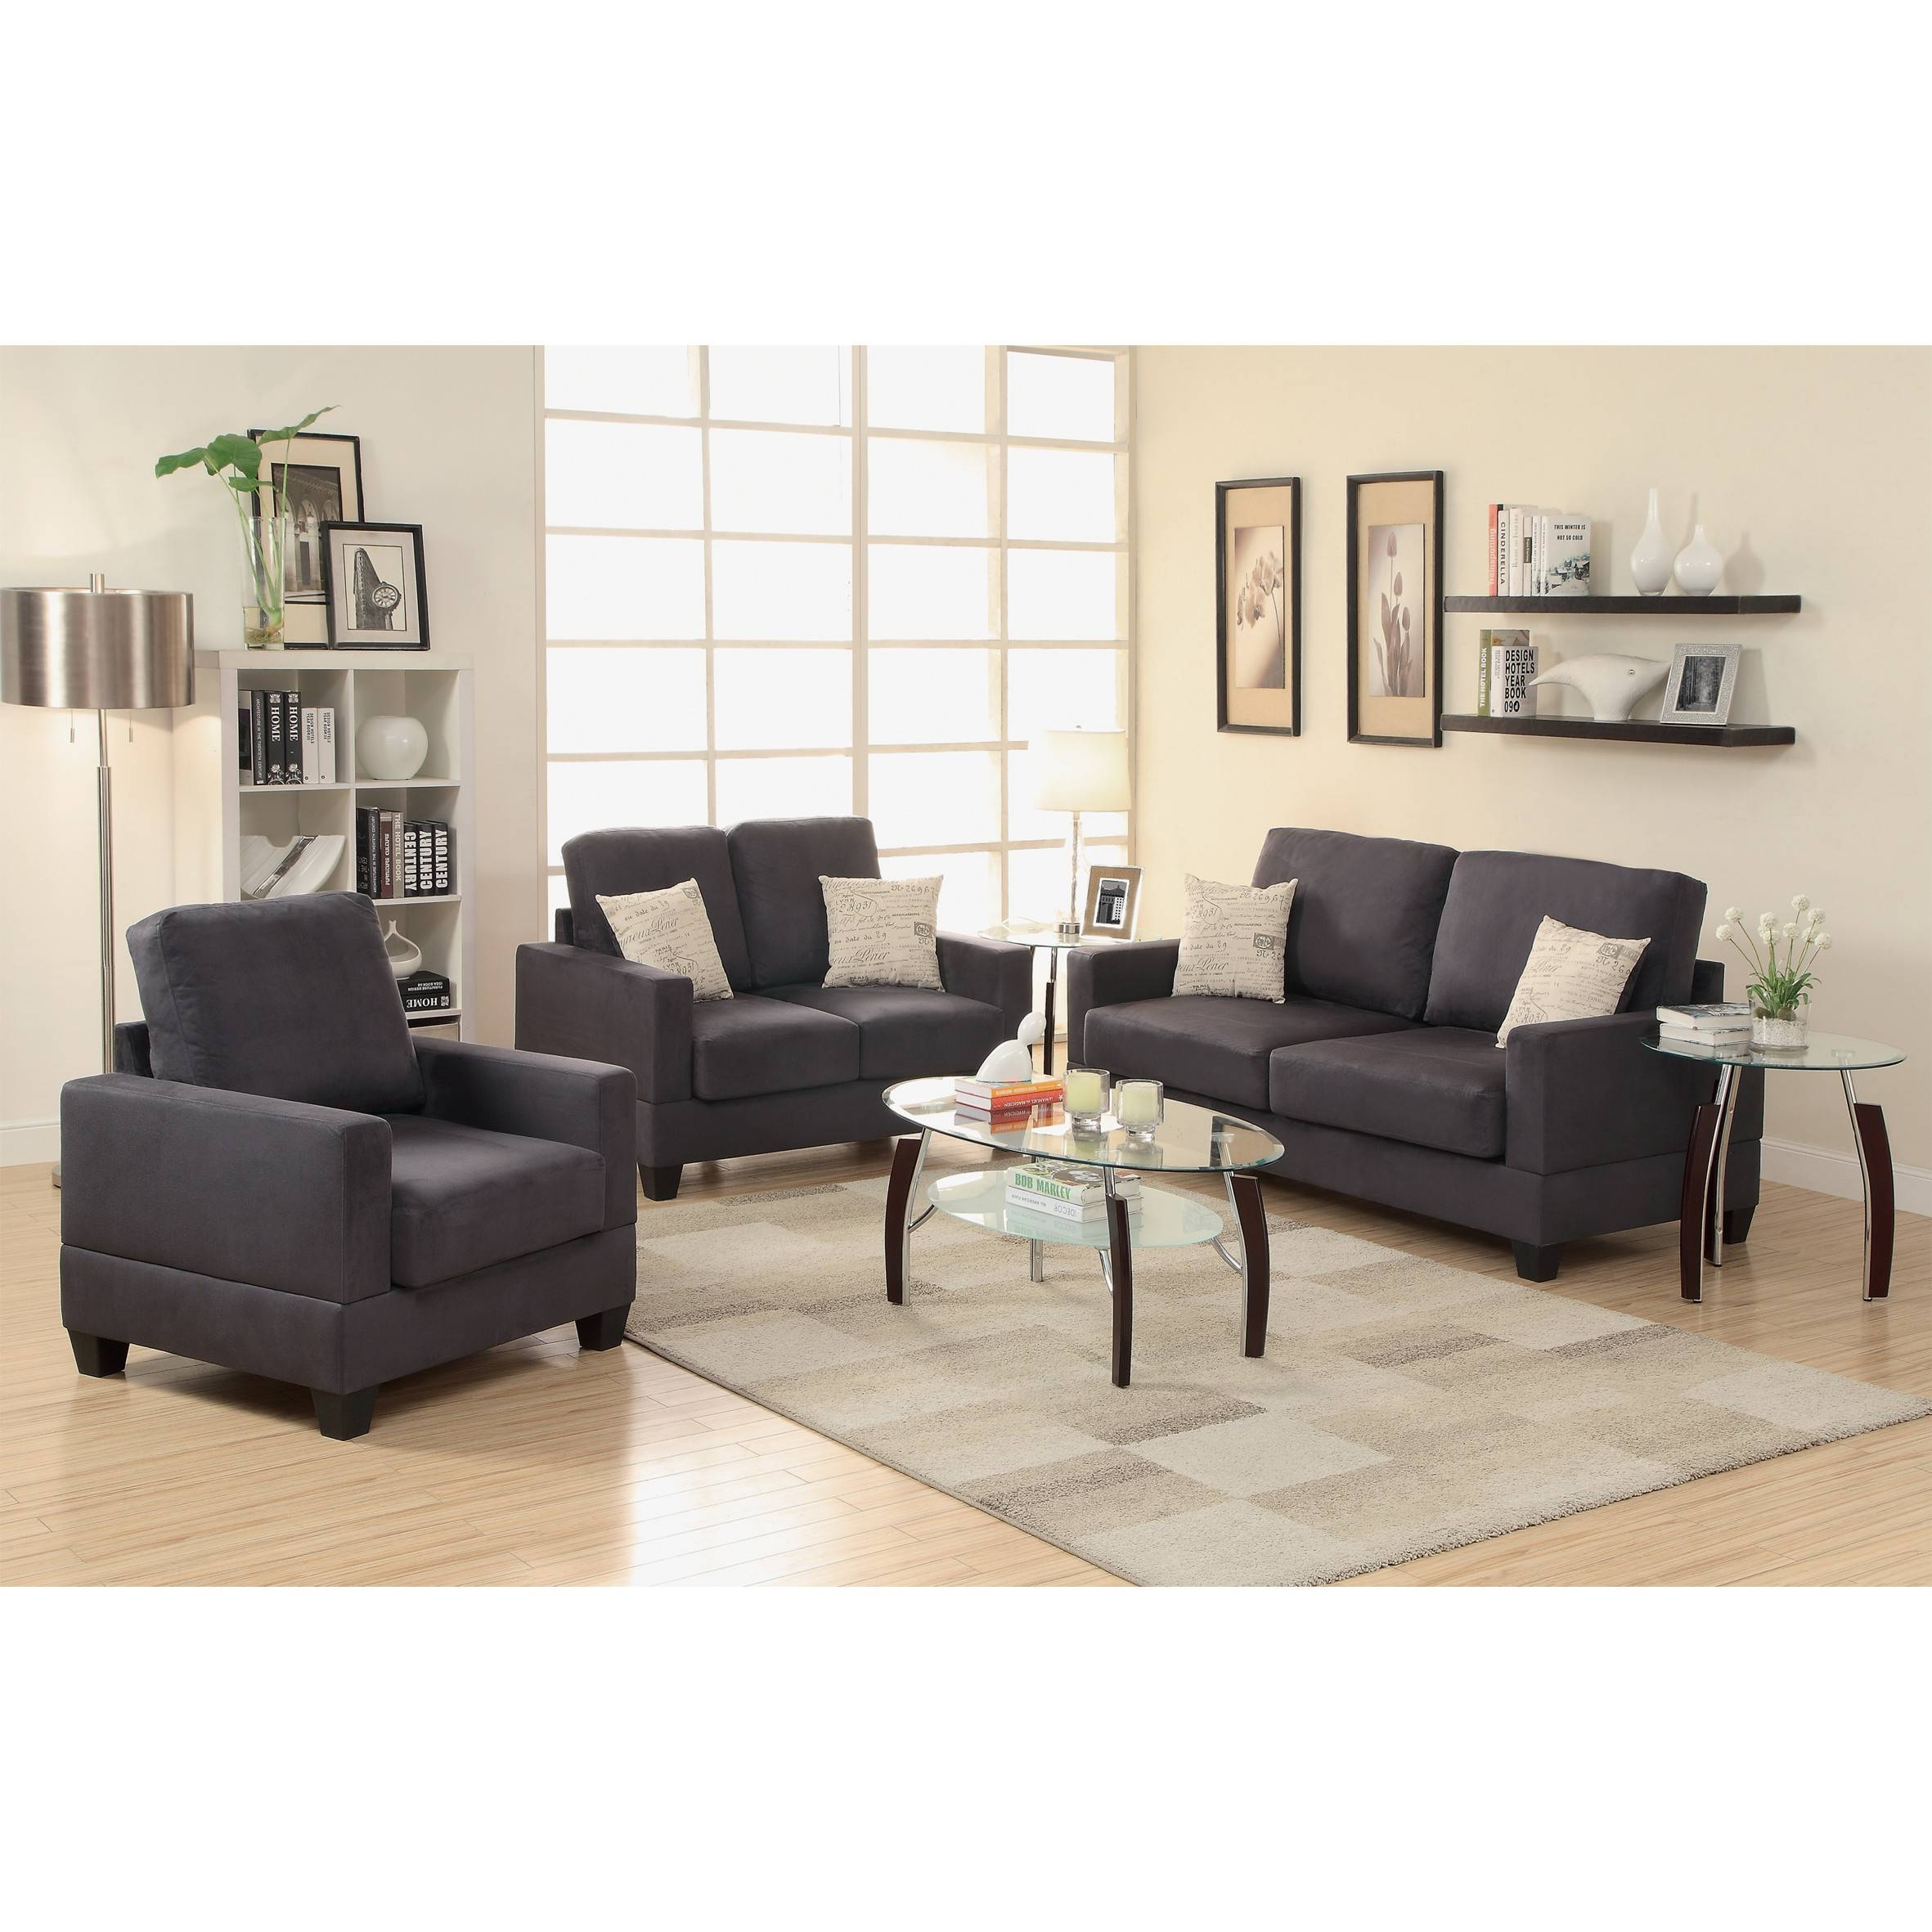 Sofa & Loveseat Set | Best Sofas Ideas - Sofascouch pertaining to Sofa Loveseat And Chairs (Image 23 of 30)